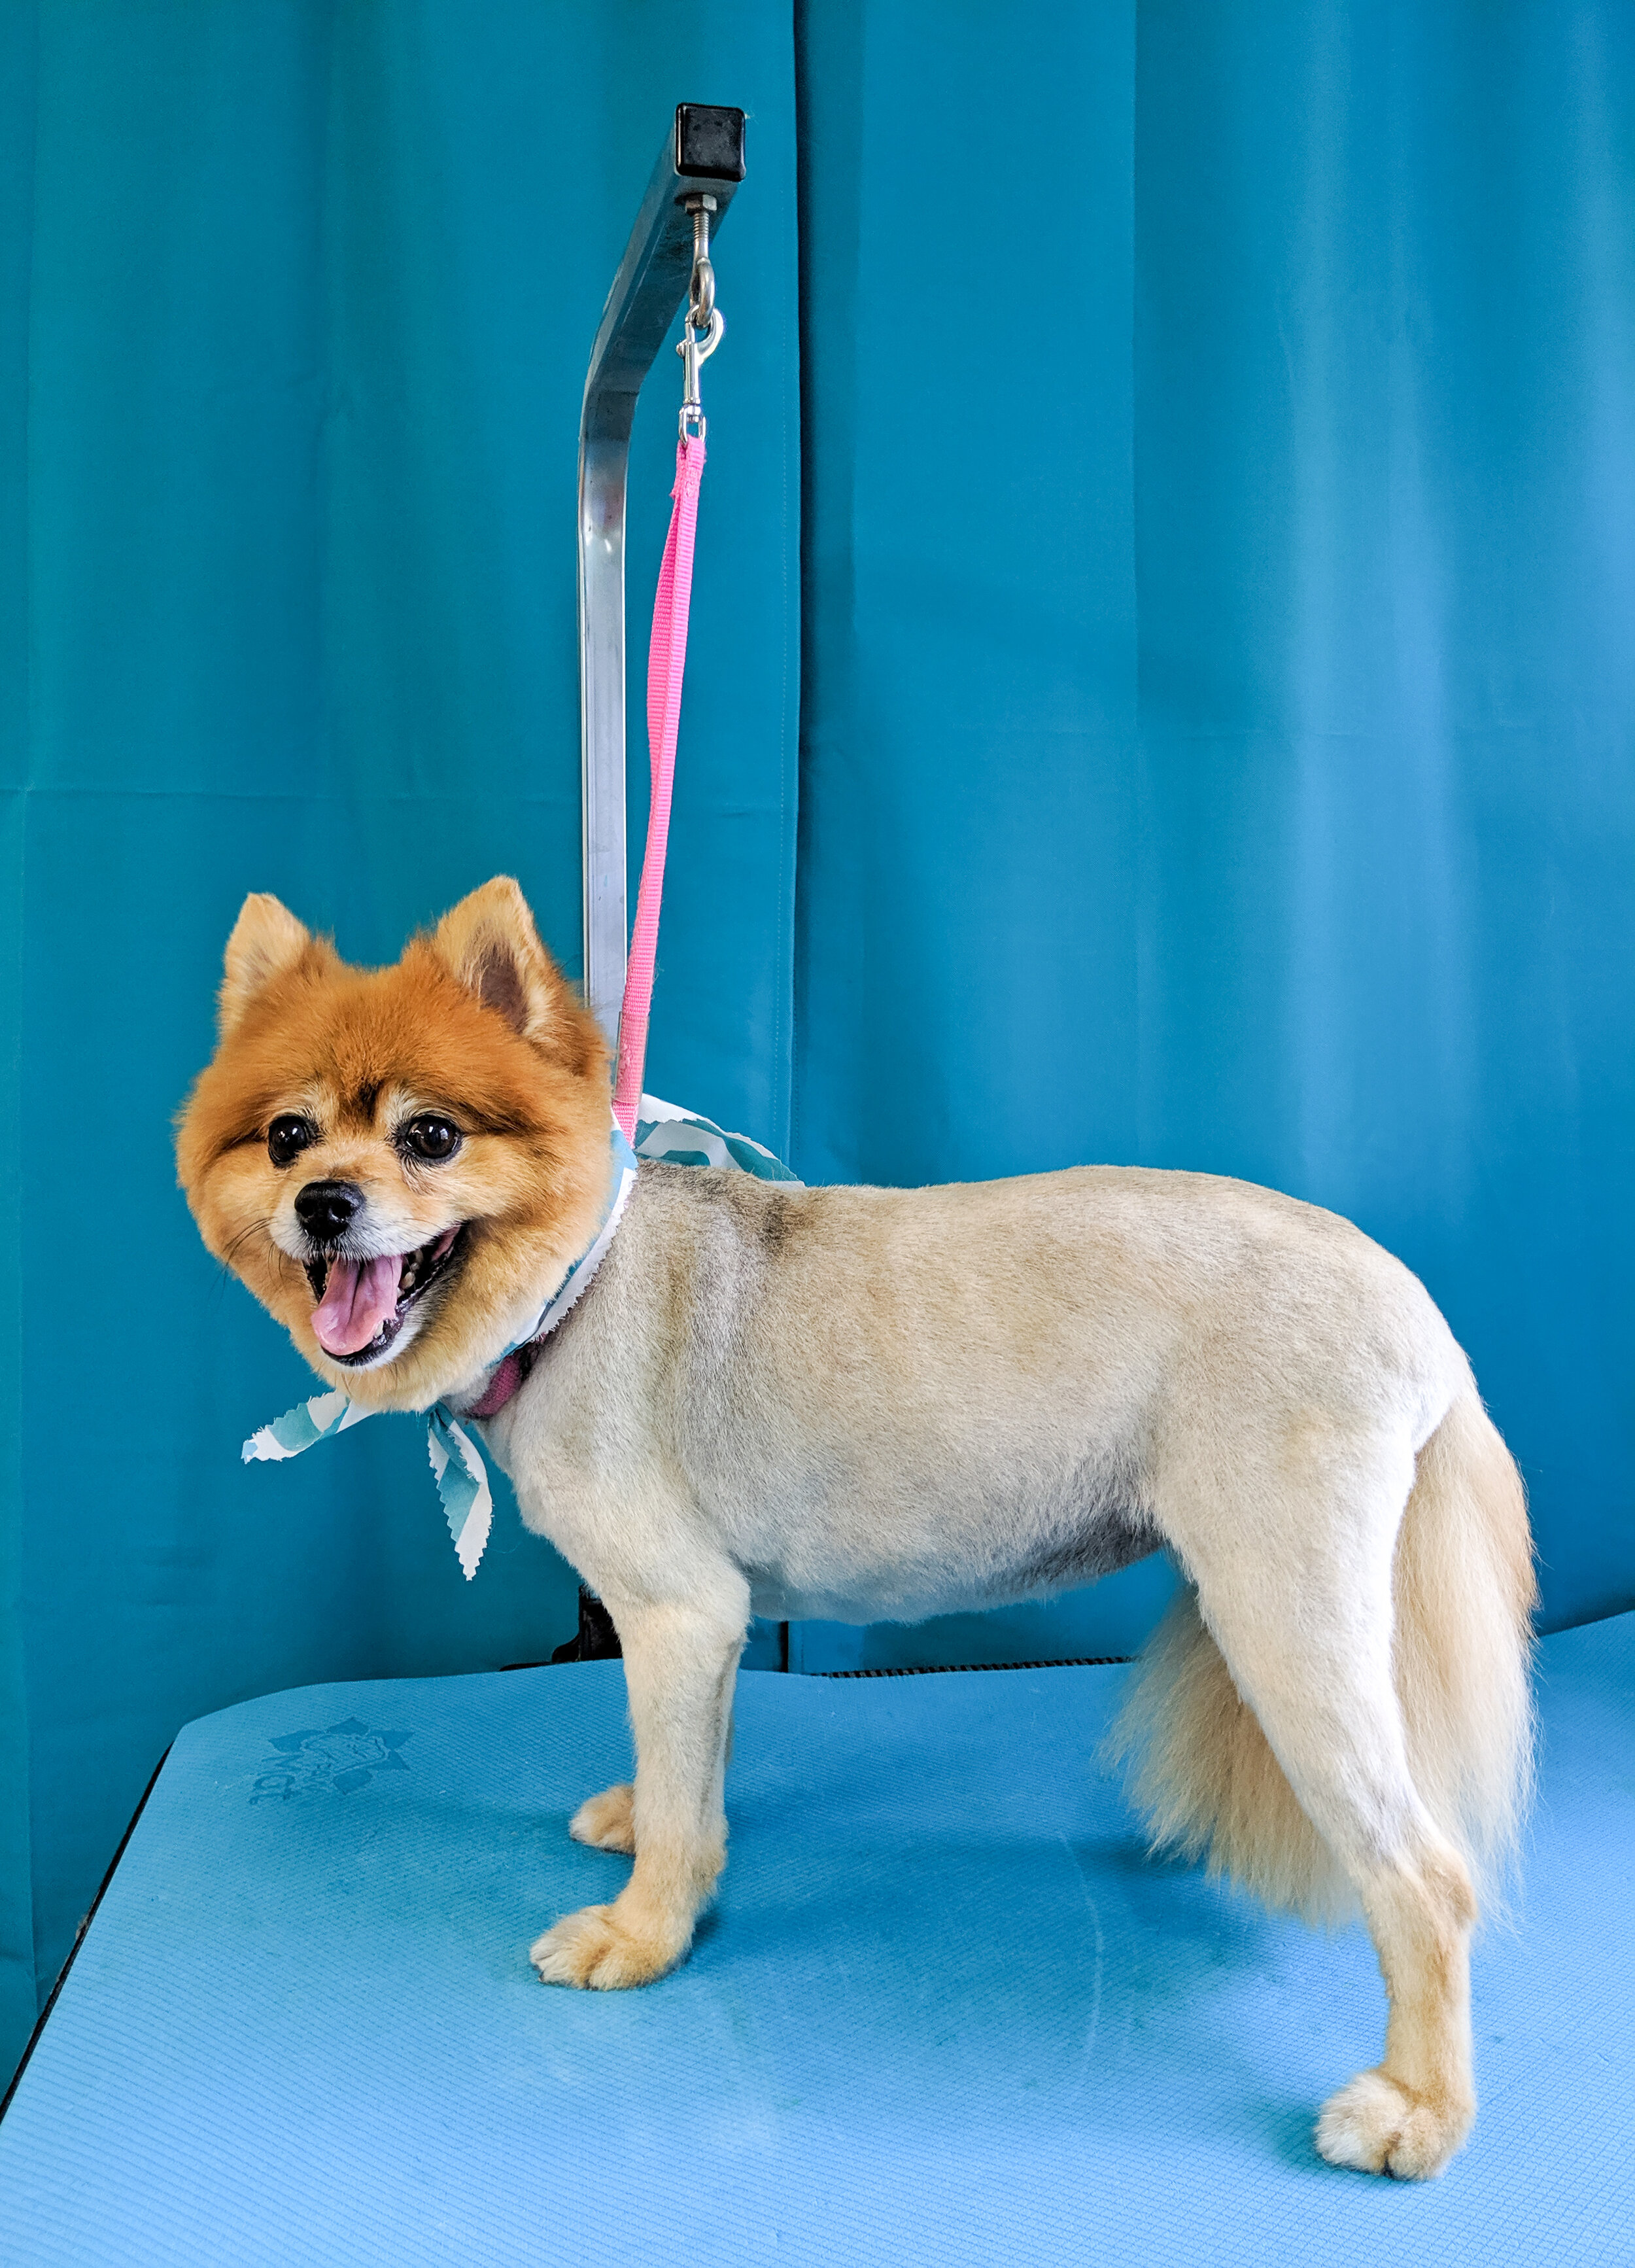 SPECIALIZE IN gERIATRIC AND SMALL DOG GROOMING! - One of our successes comes from working with older